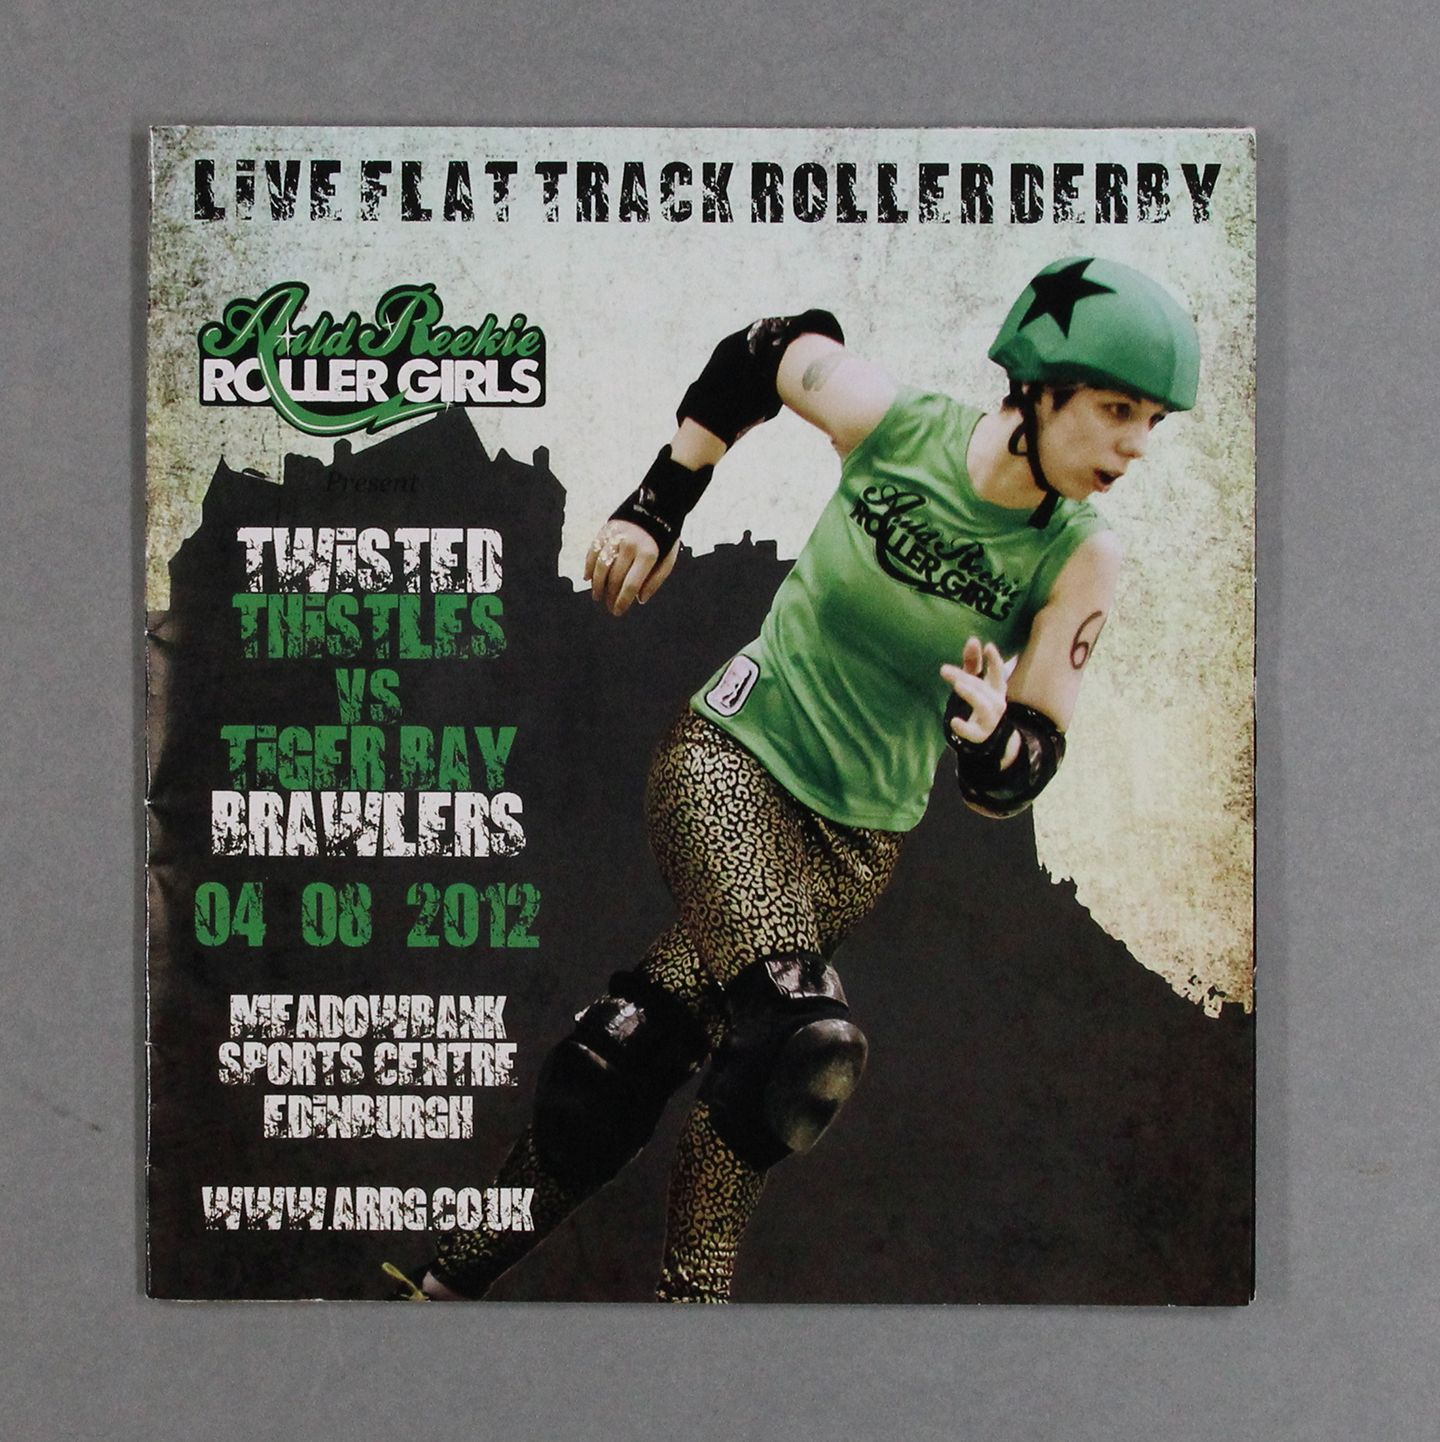 Roller Derby Bout programme cover, featuring a roller derby player in protective gear including a green helmet with a black star, wearing a sleeveless t-shirt that says 'Auld Reekie Roller Girls', and animal print leggings.